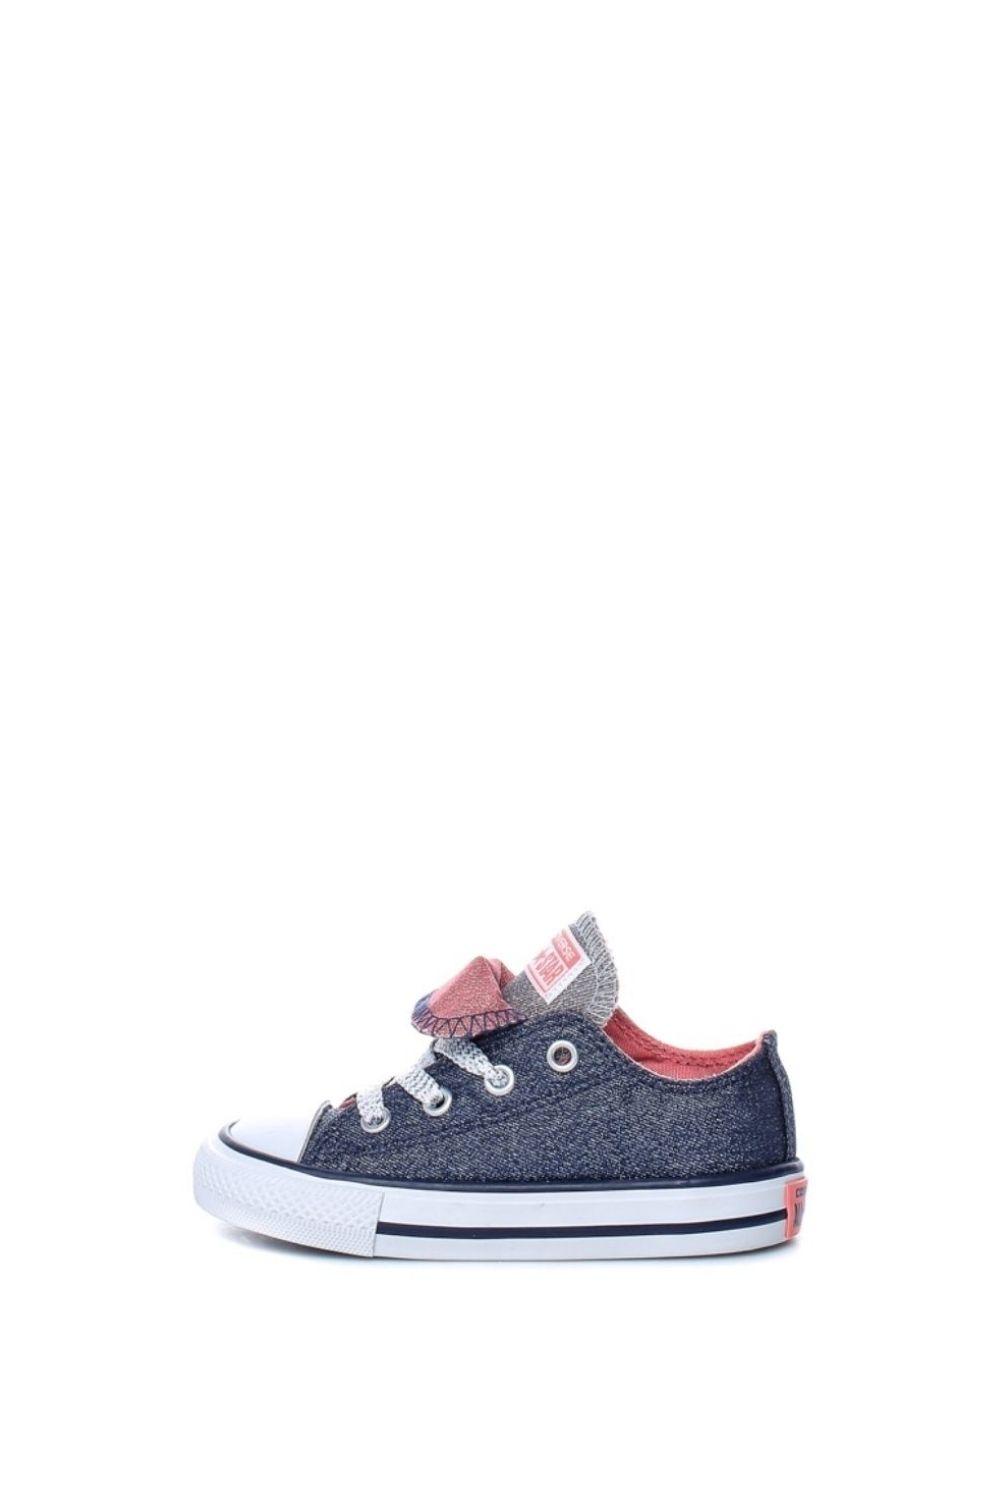 -49% Collective Online CONVERSE – Βρεφικά παπούτσια Chuck Taylor All Star  Double μπλε f93485663f4